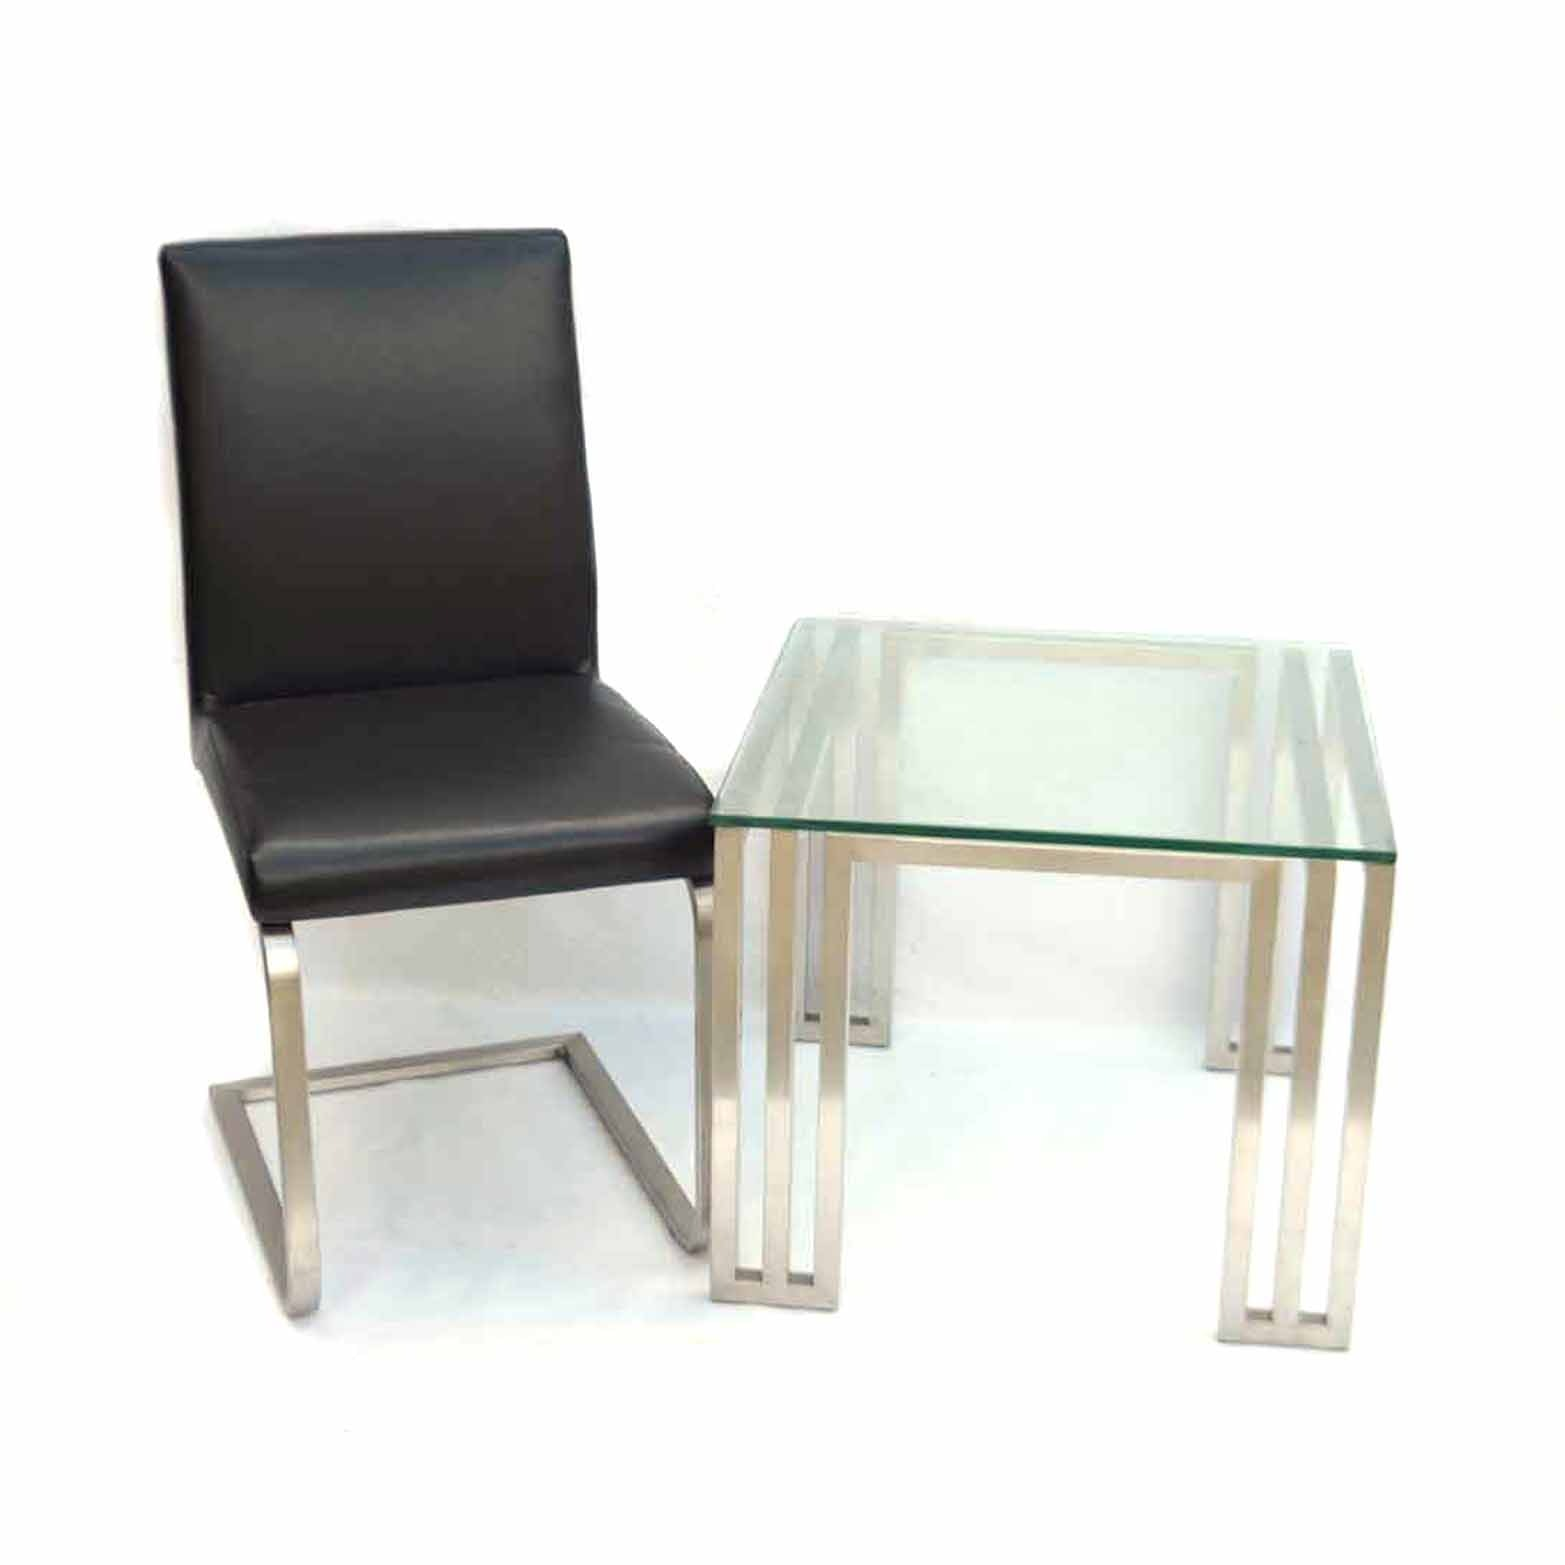 Mid Century Modern Glass-Topped Side Table with Black Side Chair